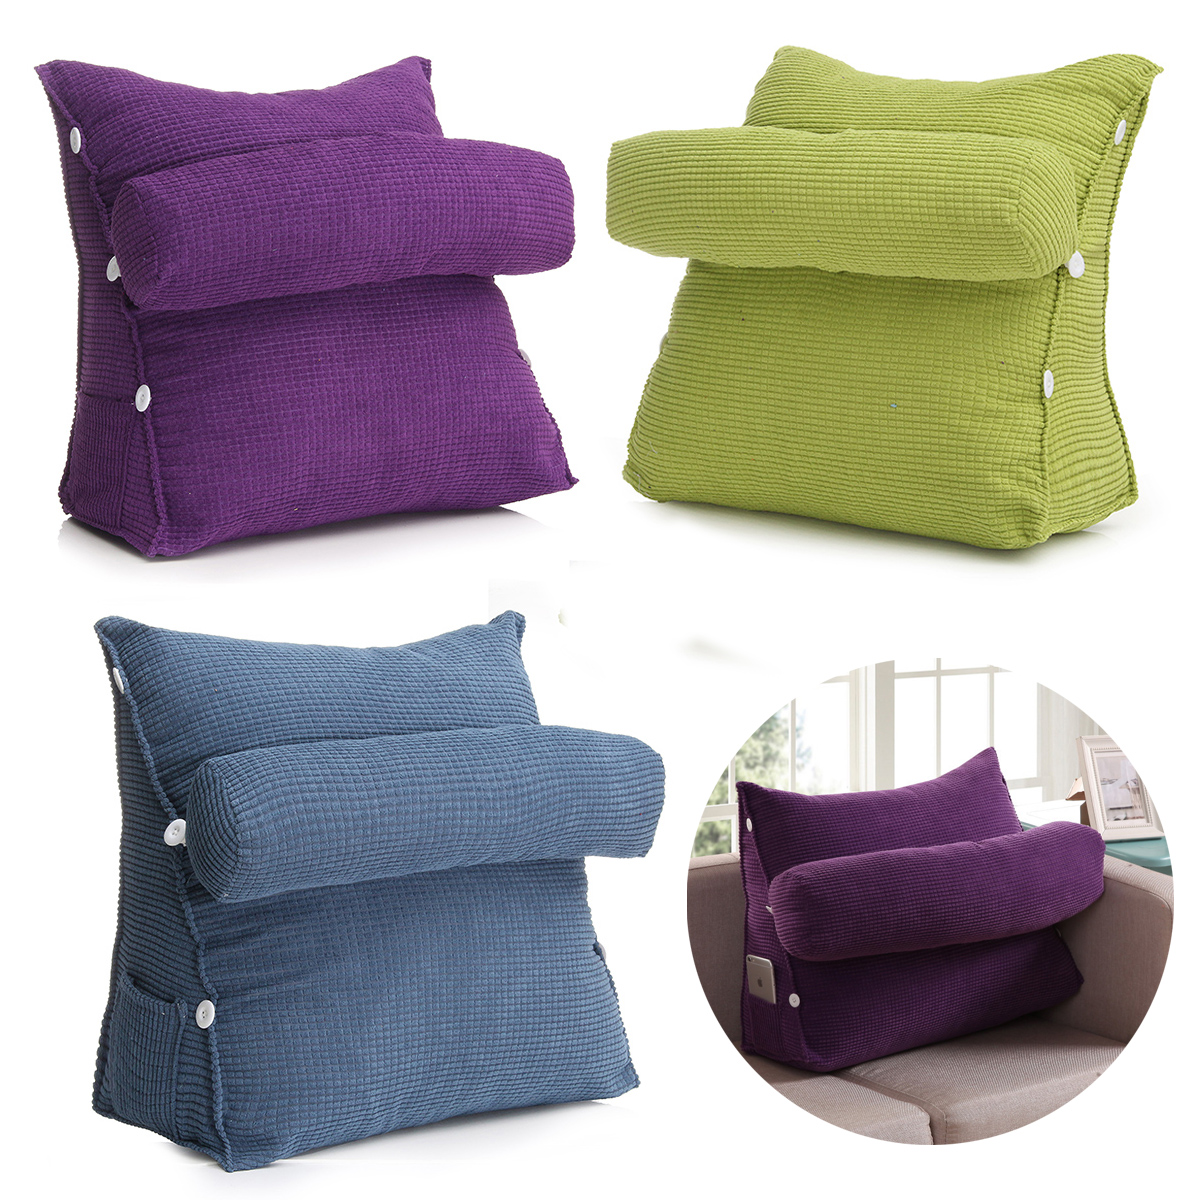 Adjustable Back Wedge Cushion Pillow Sofa Bed Office Chair Rest Waist Neck Support for Kids Children Gift